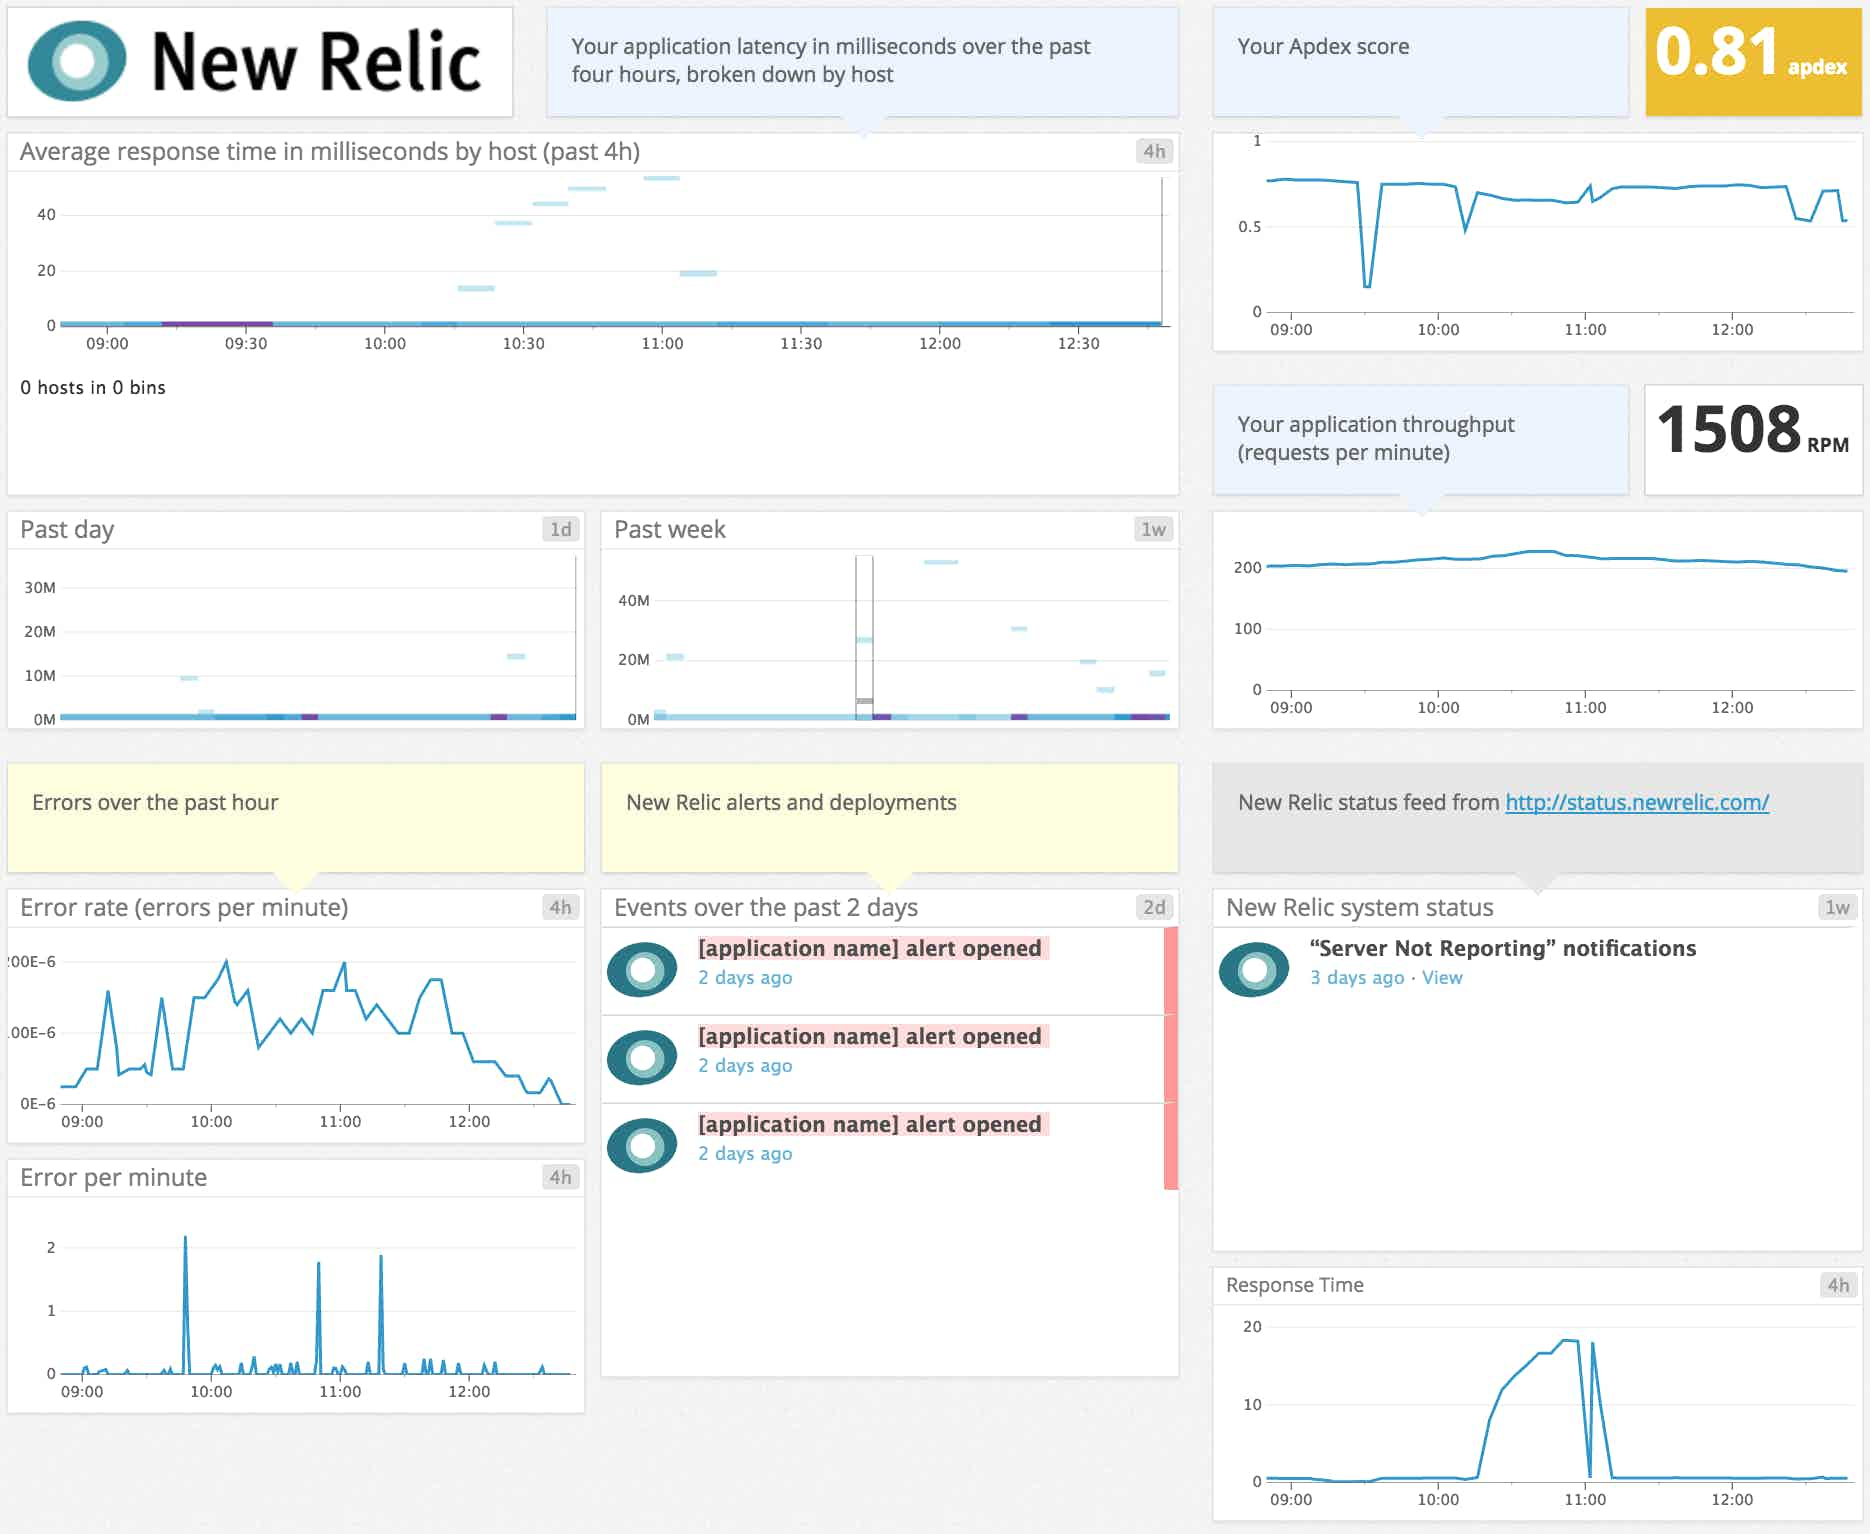 A Datadog template dashboard displaying key New Relic application metrics